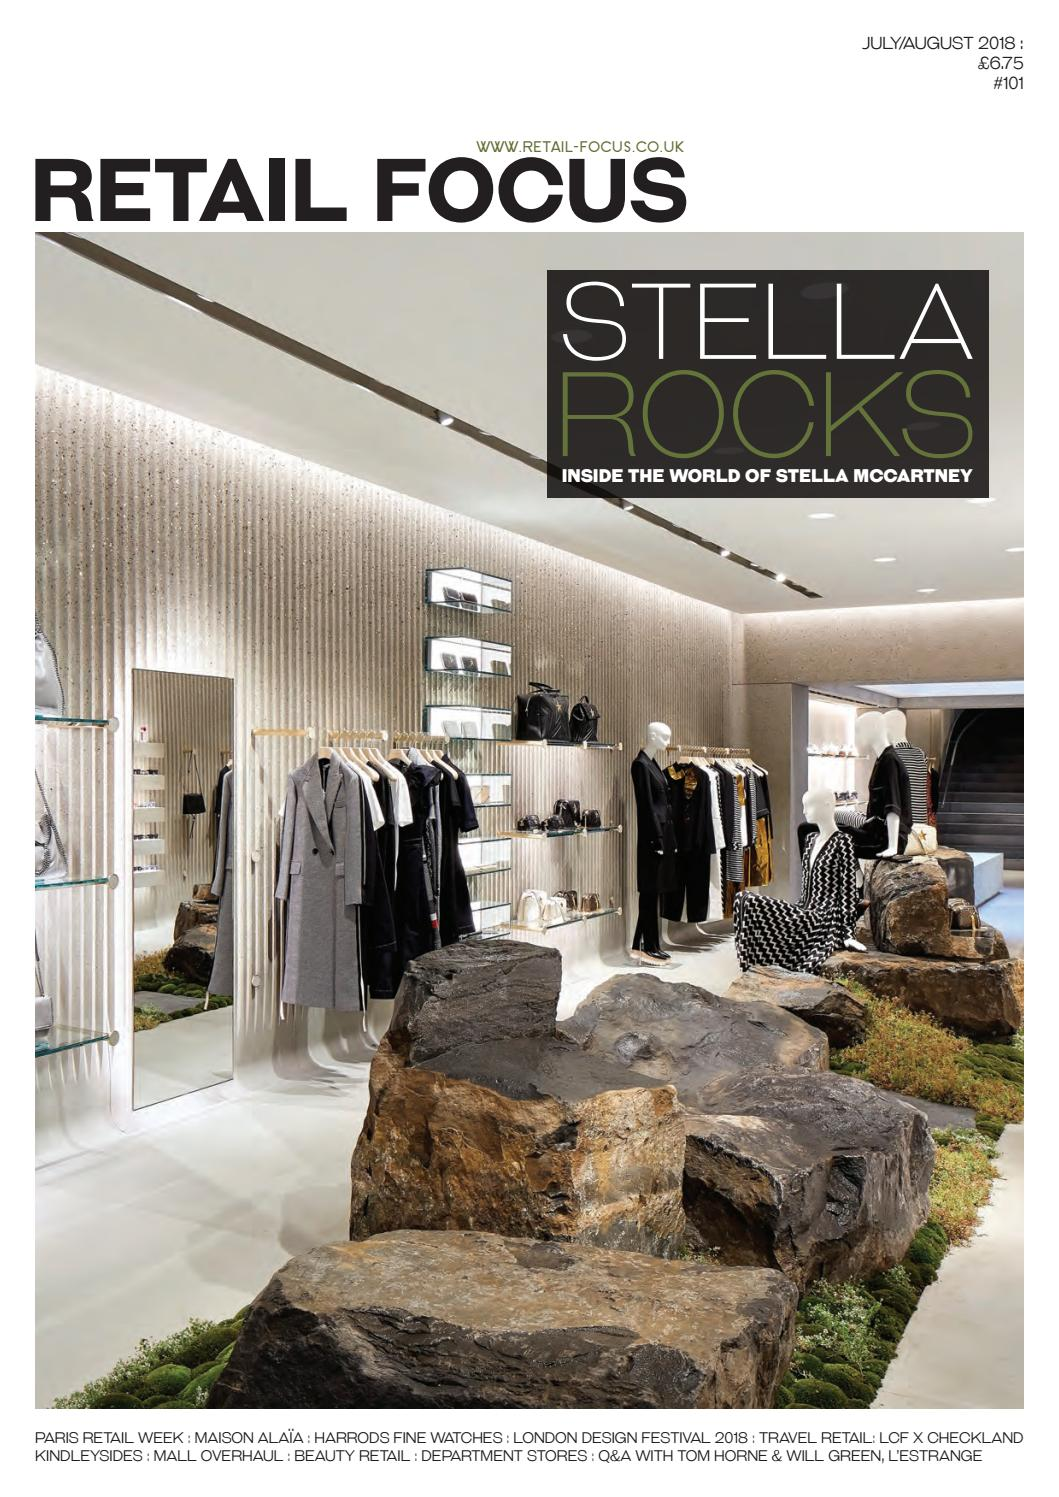 Retail Focus #101 | July/August 2018 by Retail Focus - issuu